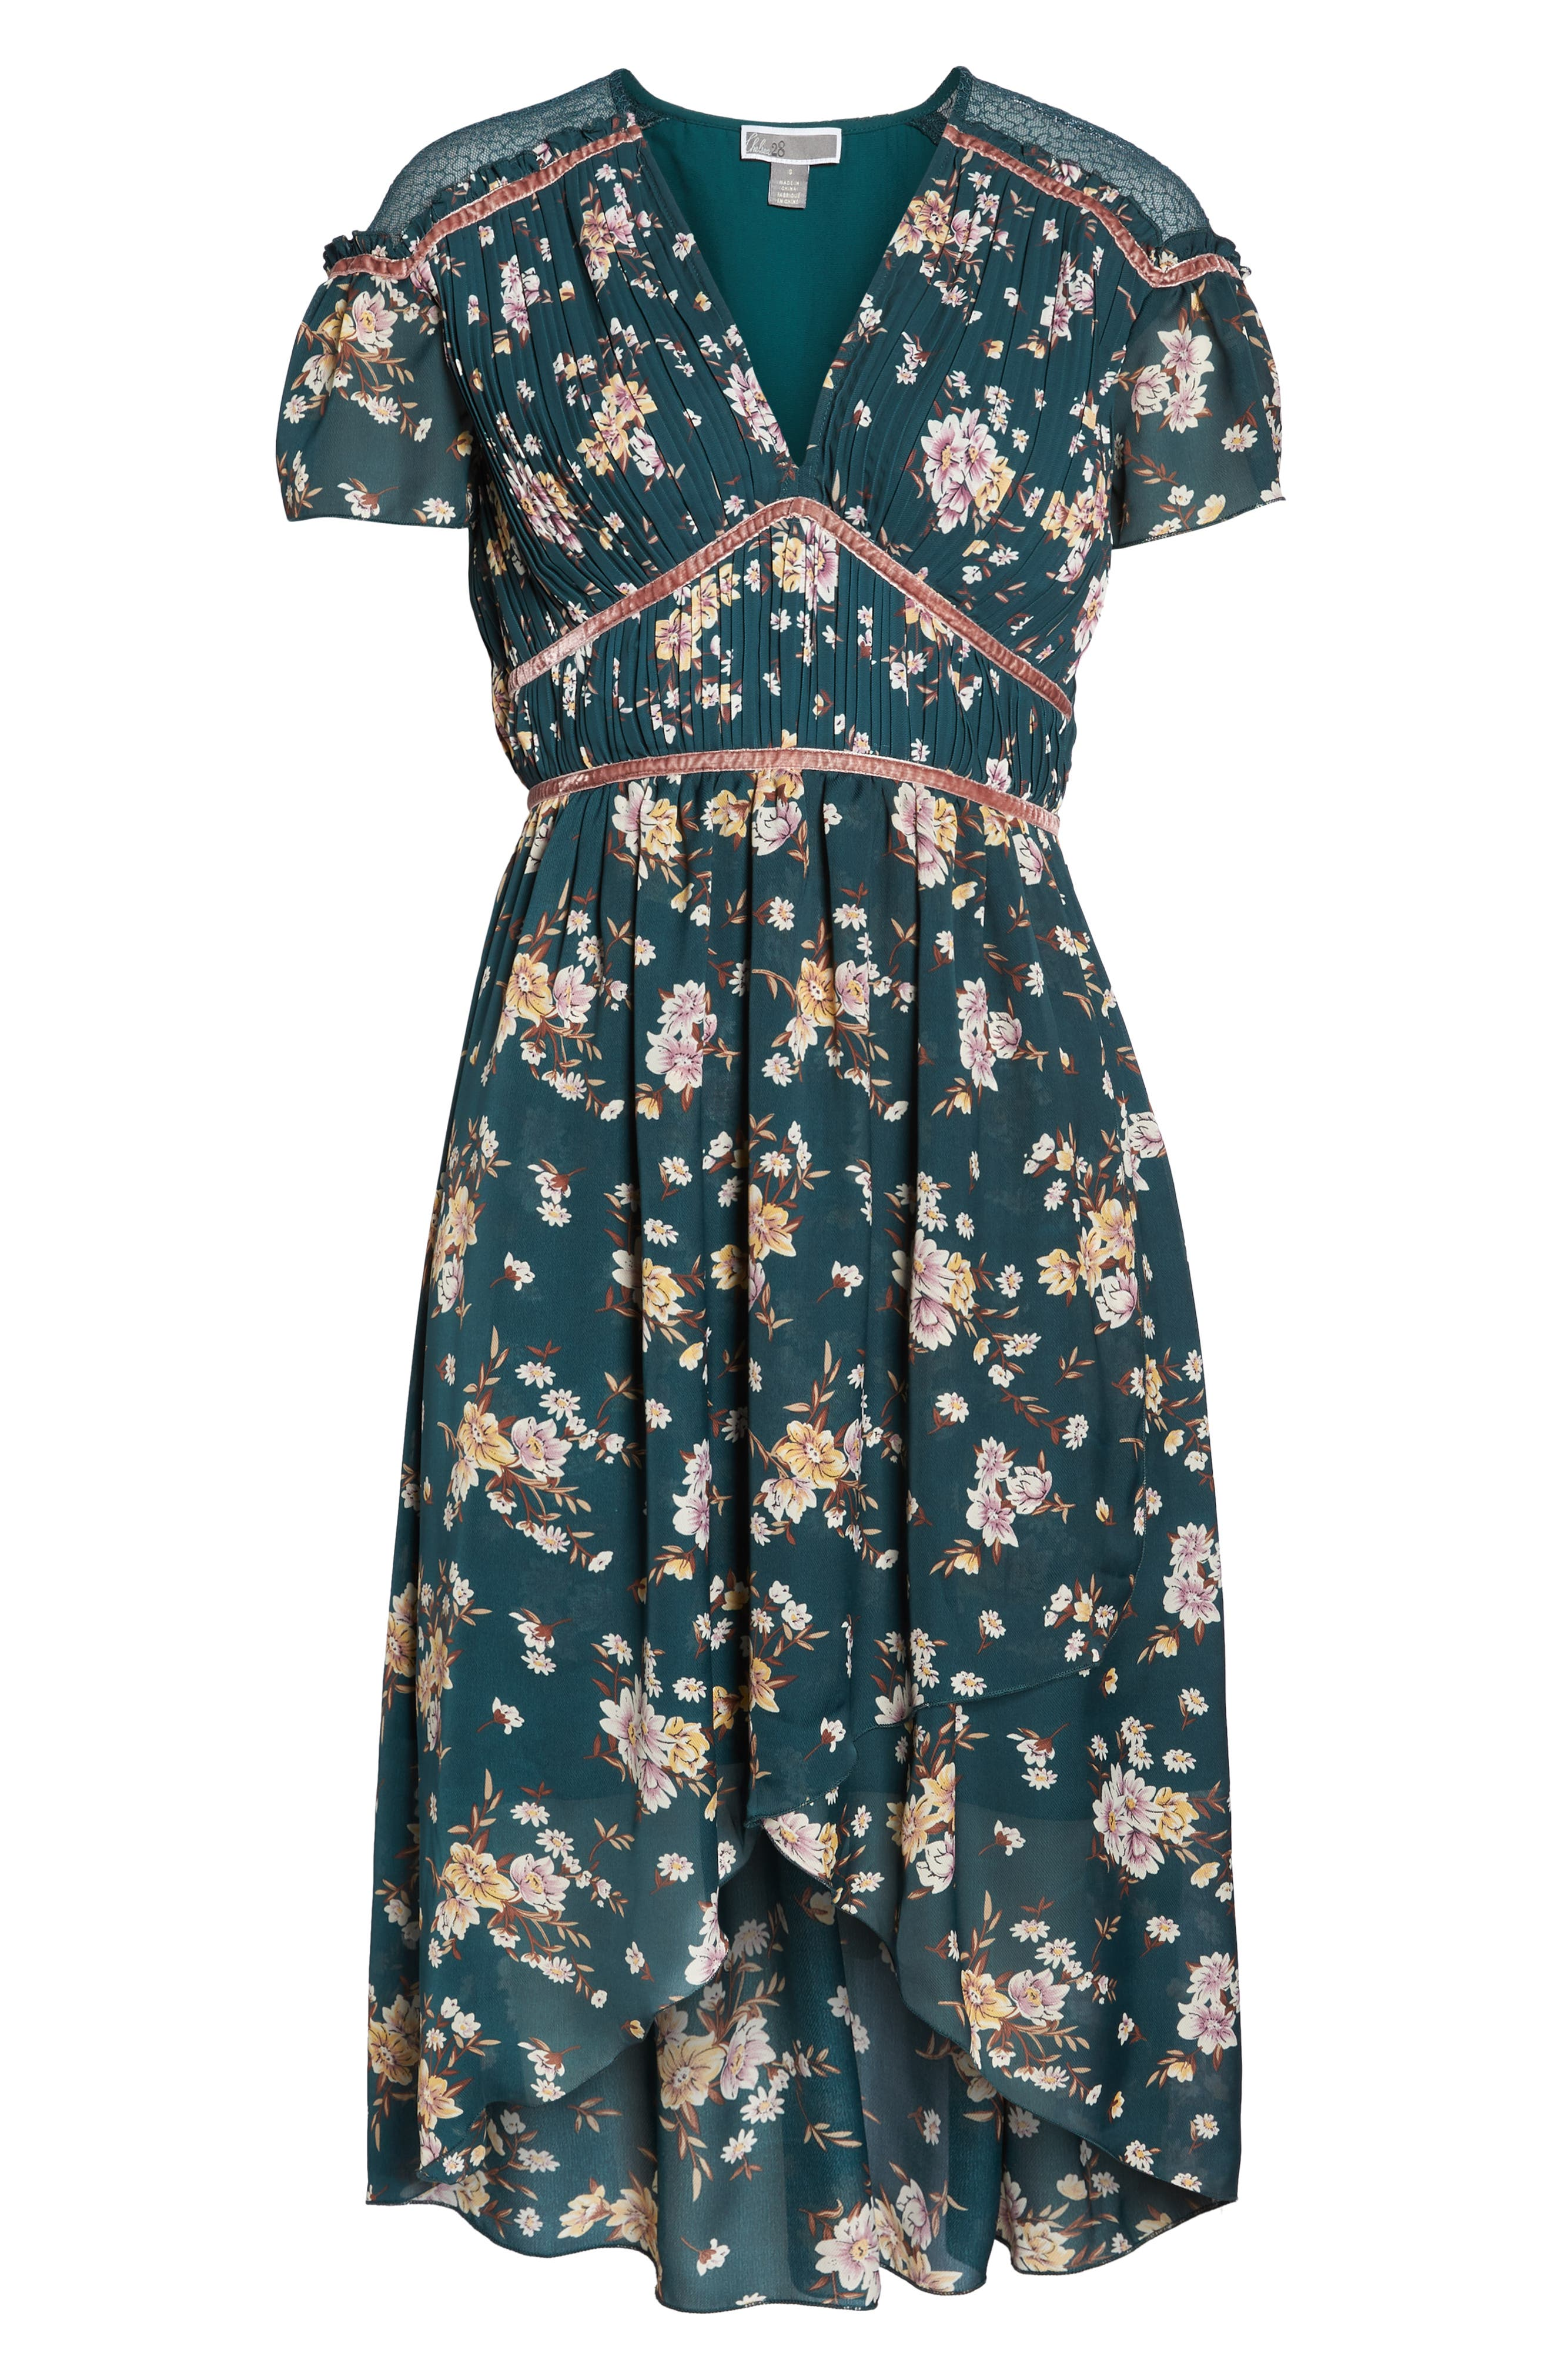 Floral Pleat & Lace Mix Dress,                             Alternate thumbnail 8, color,                             GREEN BRANCHING LILIES